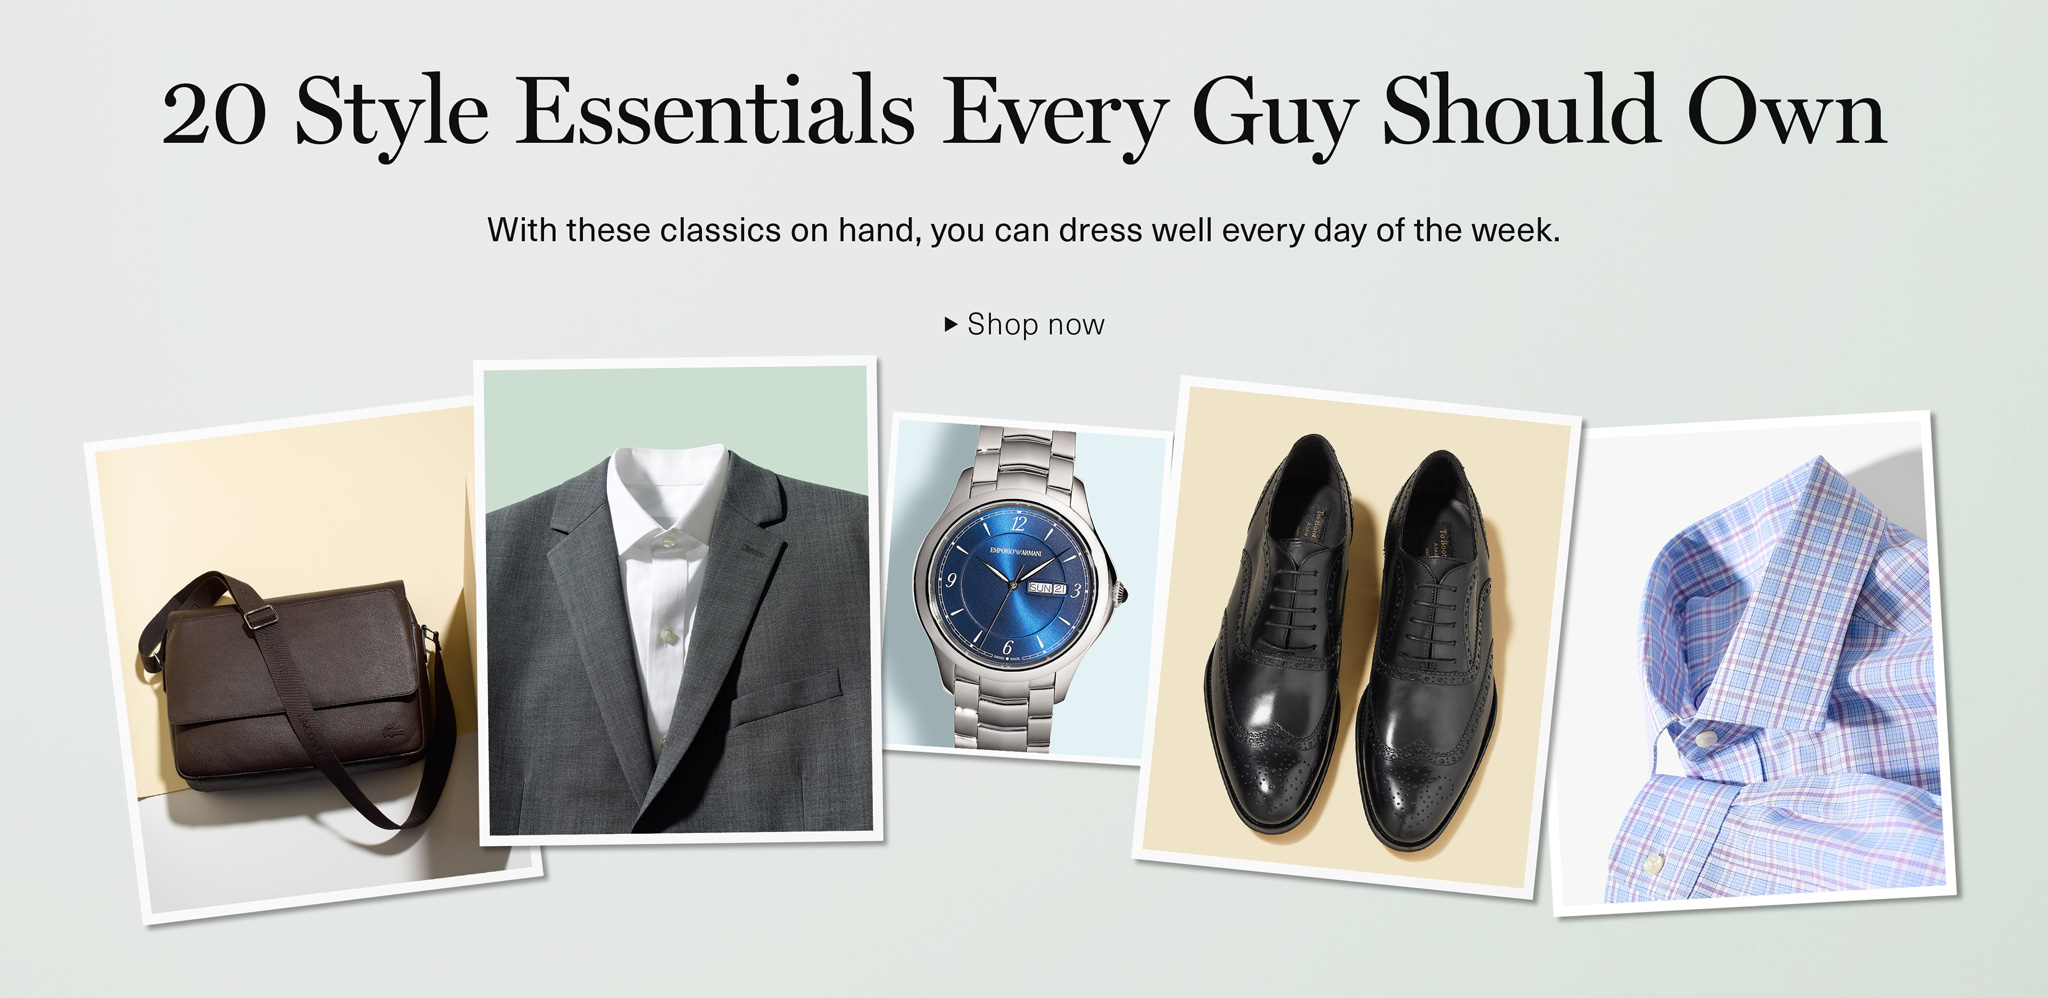 20 Essentials Every Guy Should Own